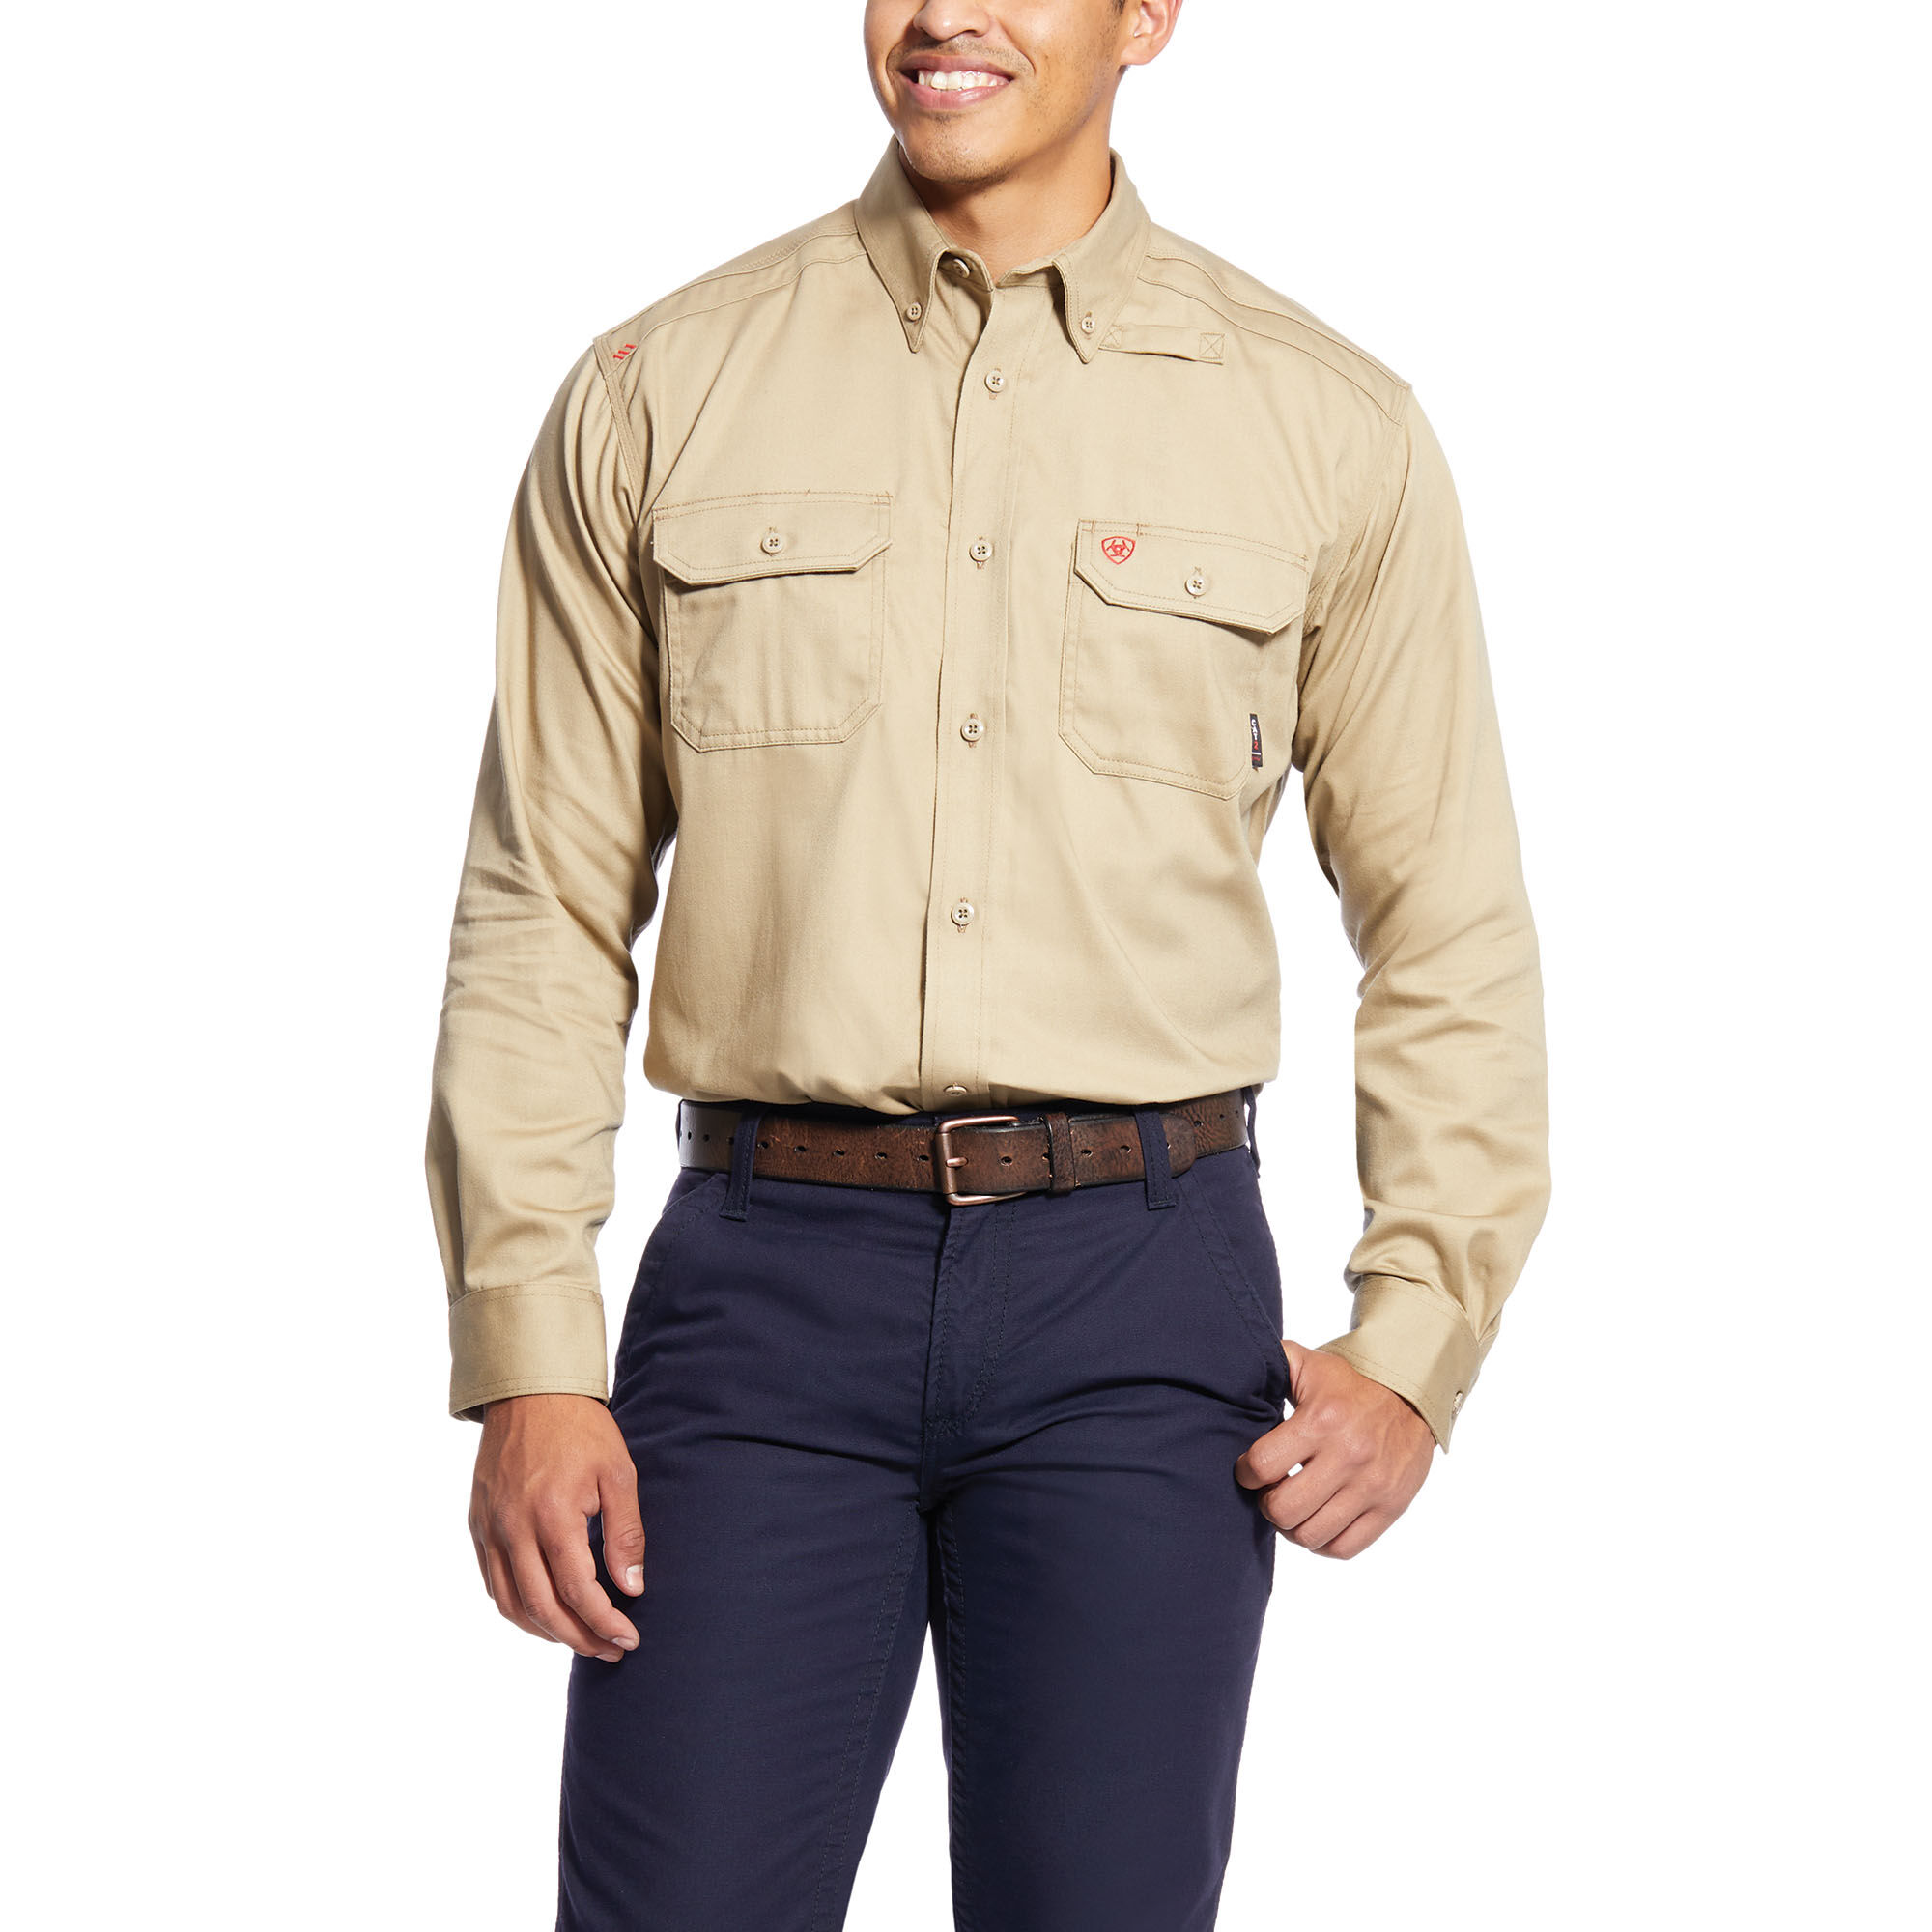 c6d74331fdb7 Images. FR Solid Work Shirt